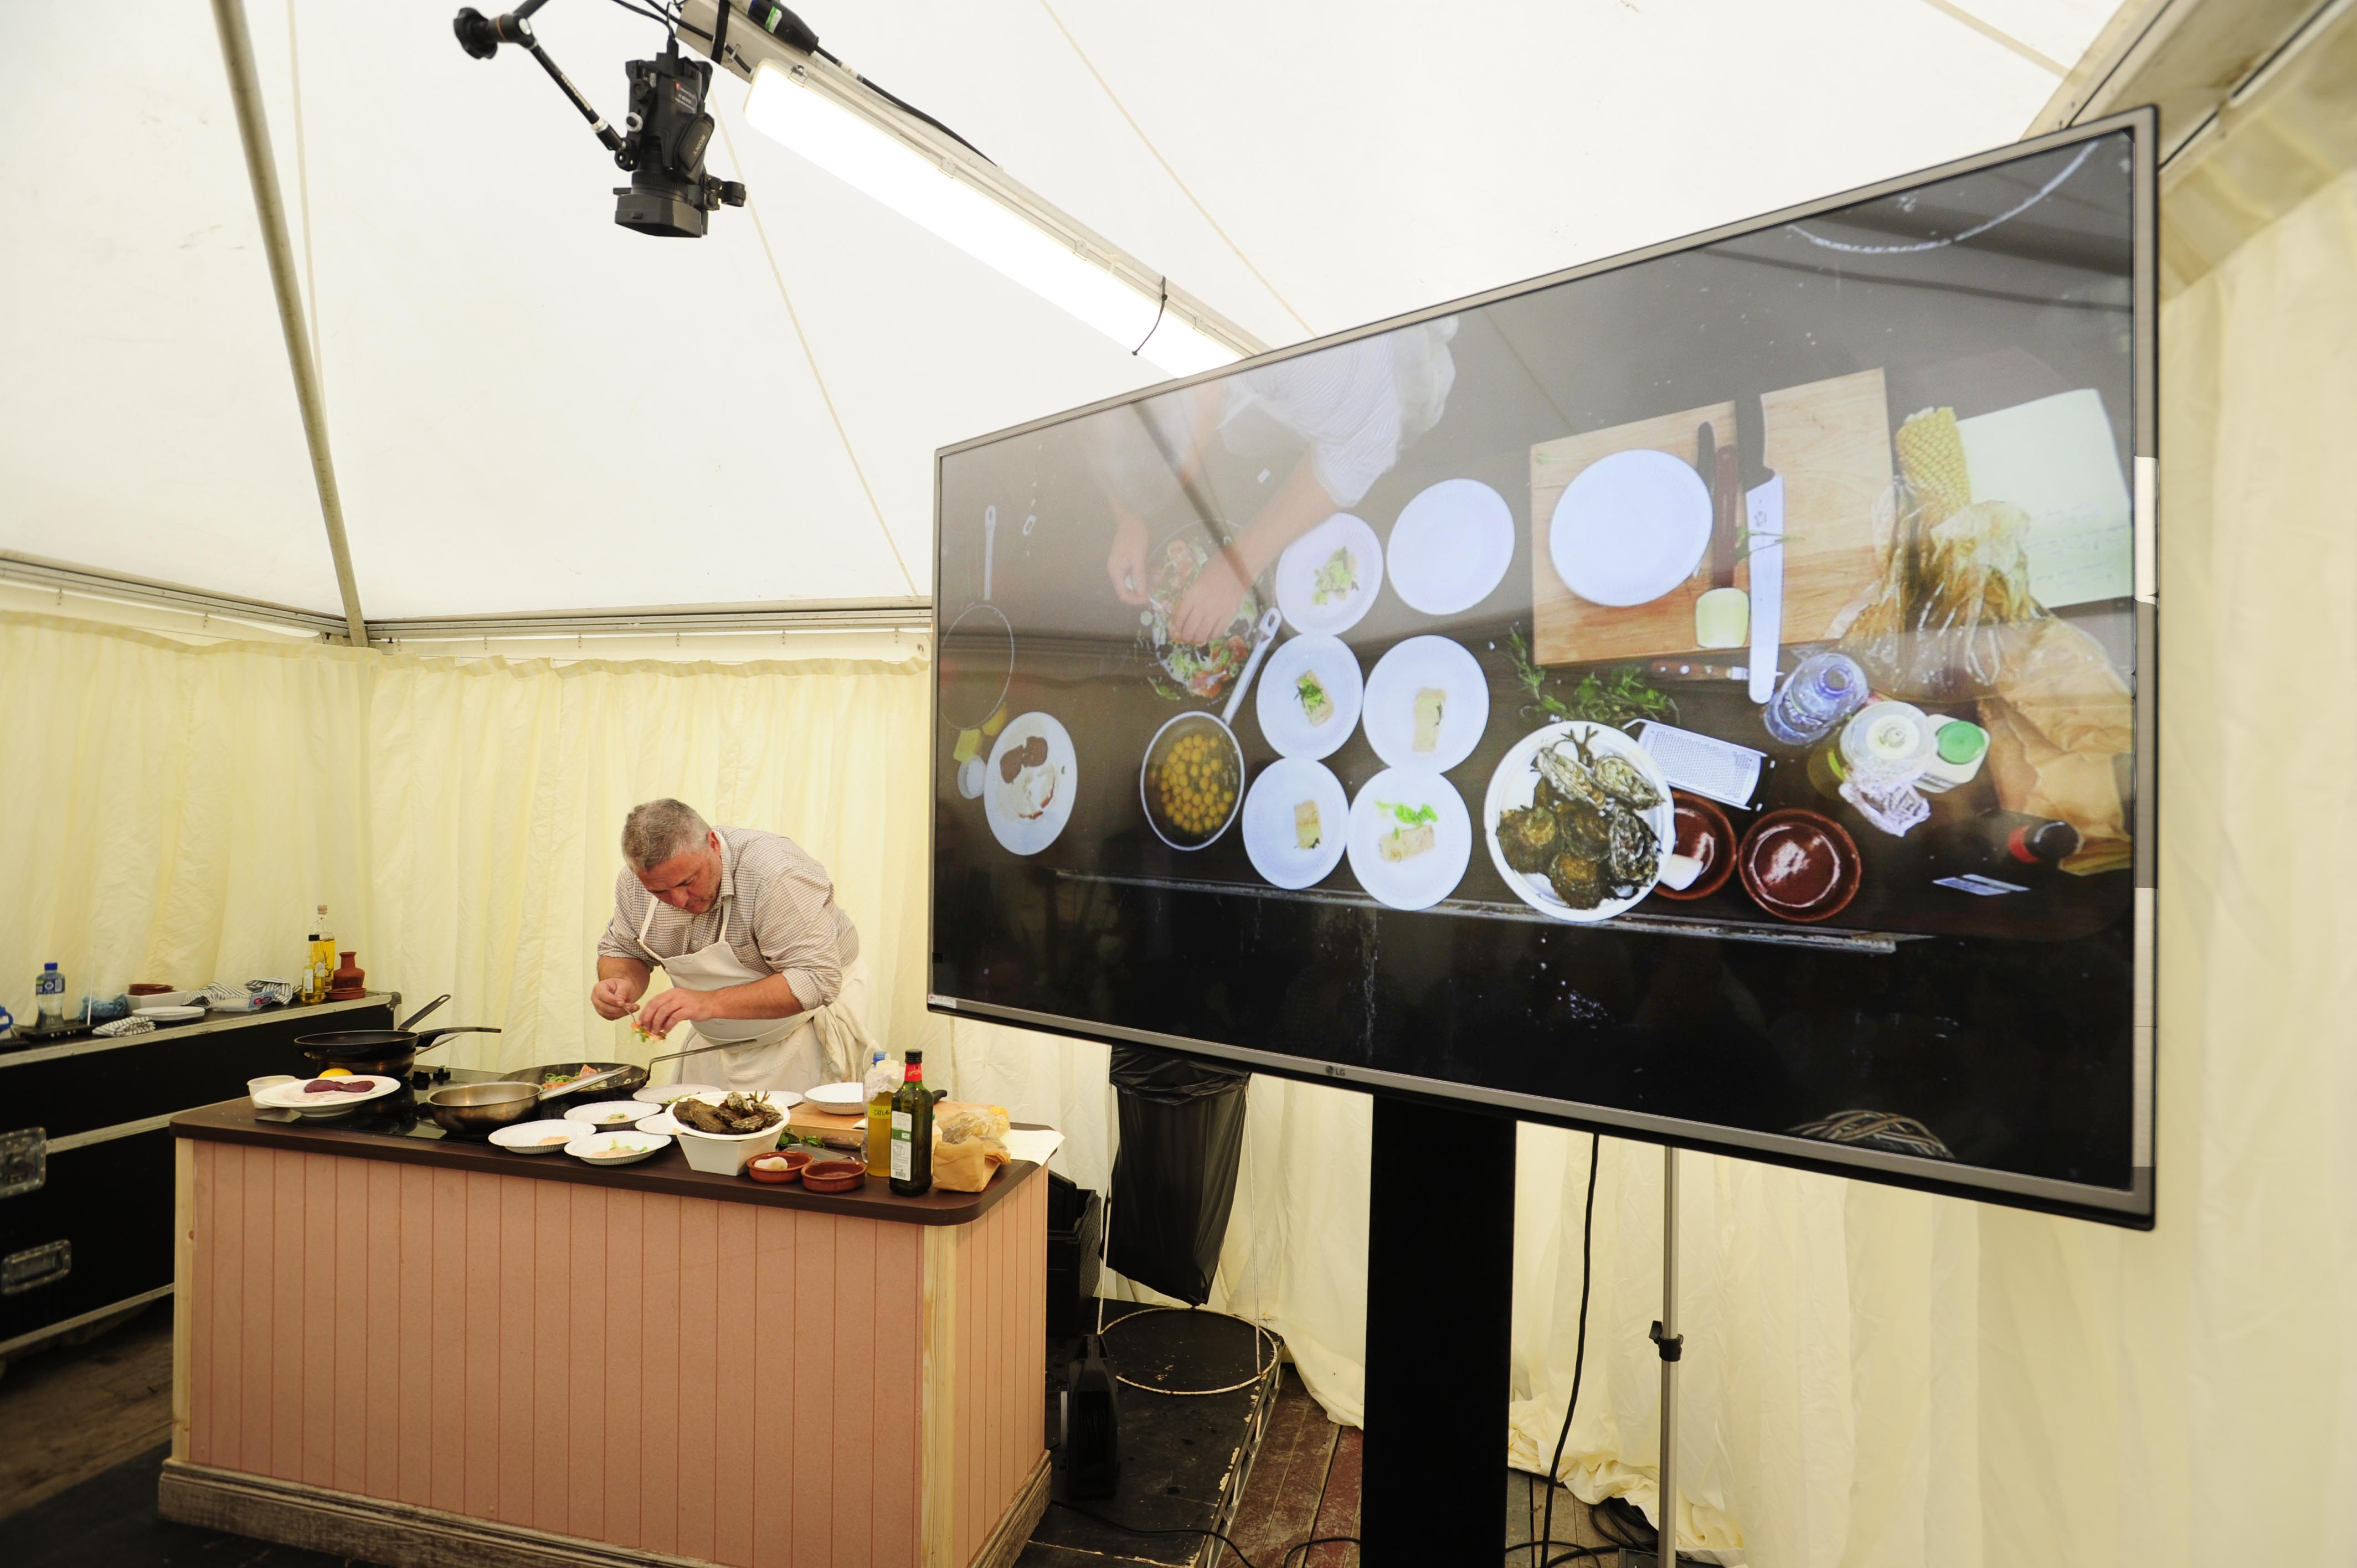 Sunday-Demo-Kitchen-Galway-Int-Oyster-_-Seafood-Festival-30-09-18-035